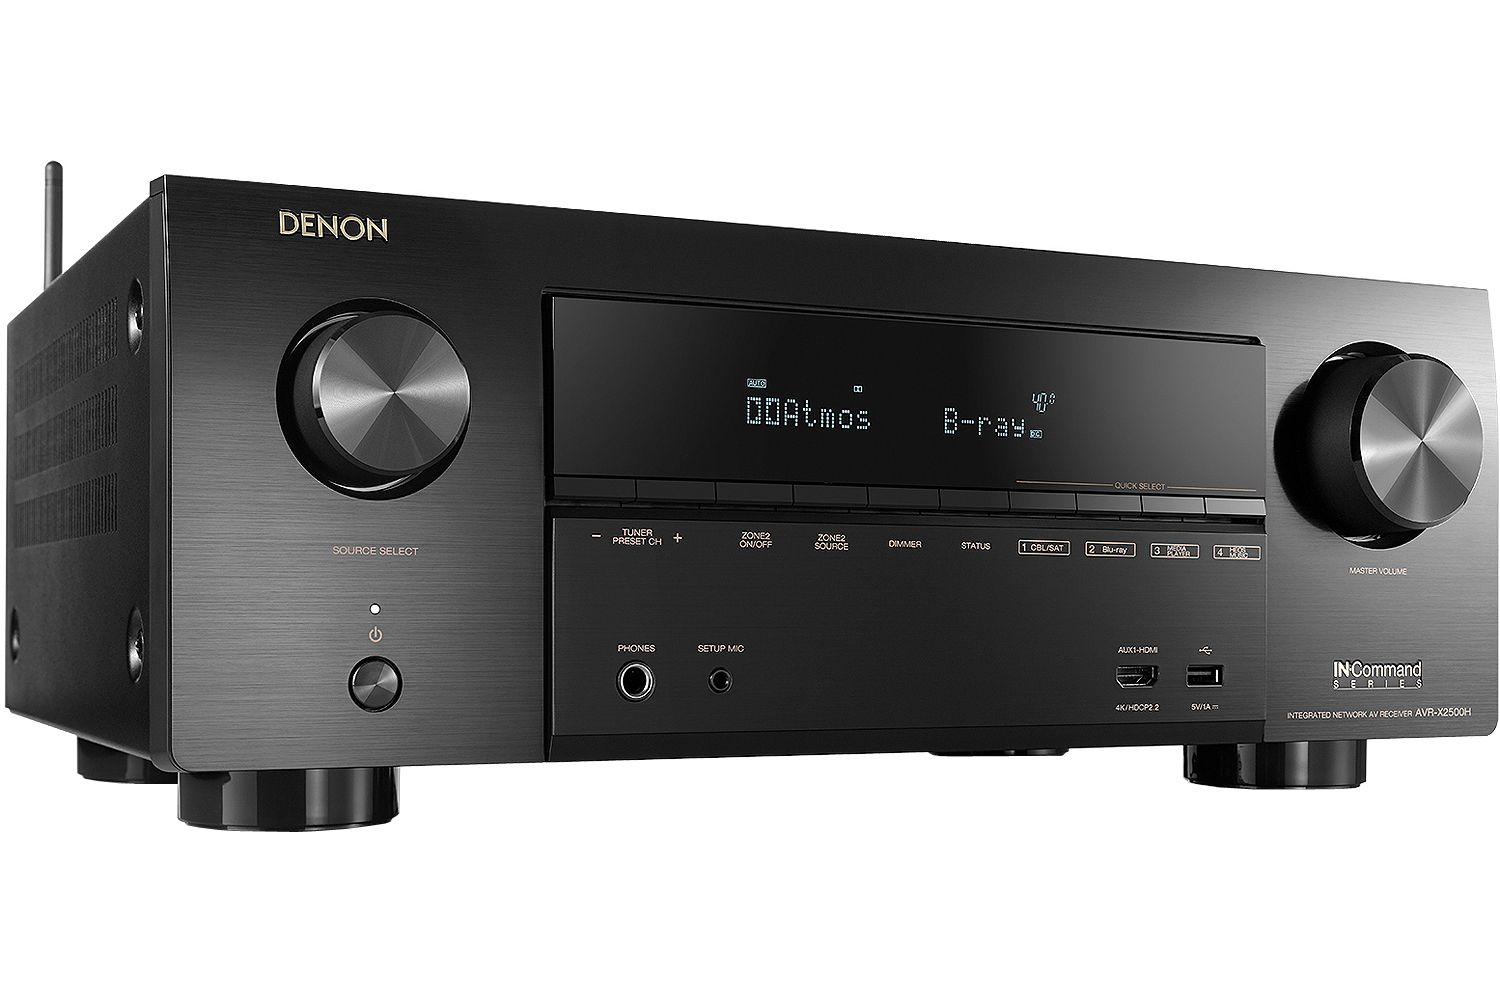 Denon 7 2 Channel Full 4K Ultra HD AV Receiver With Amazon Alexa Voice  Control